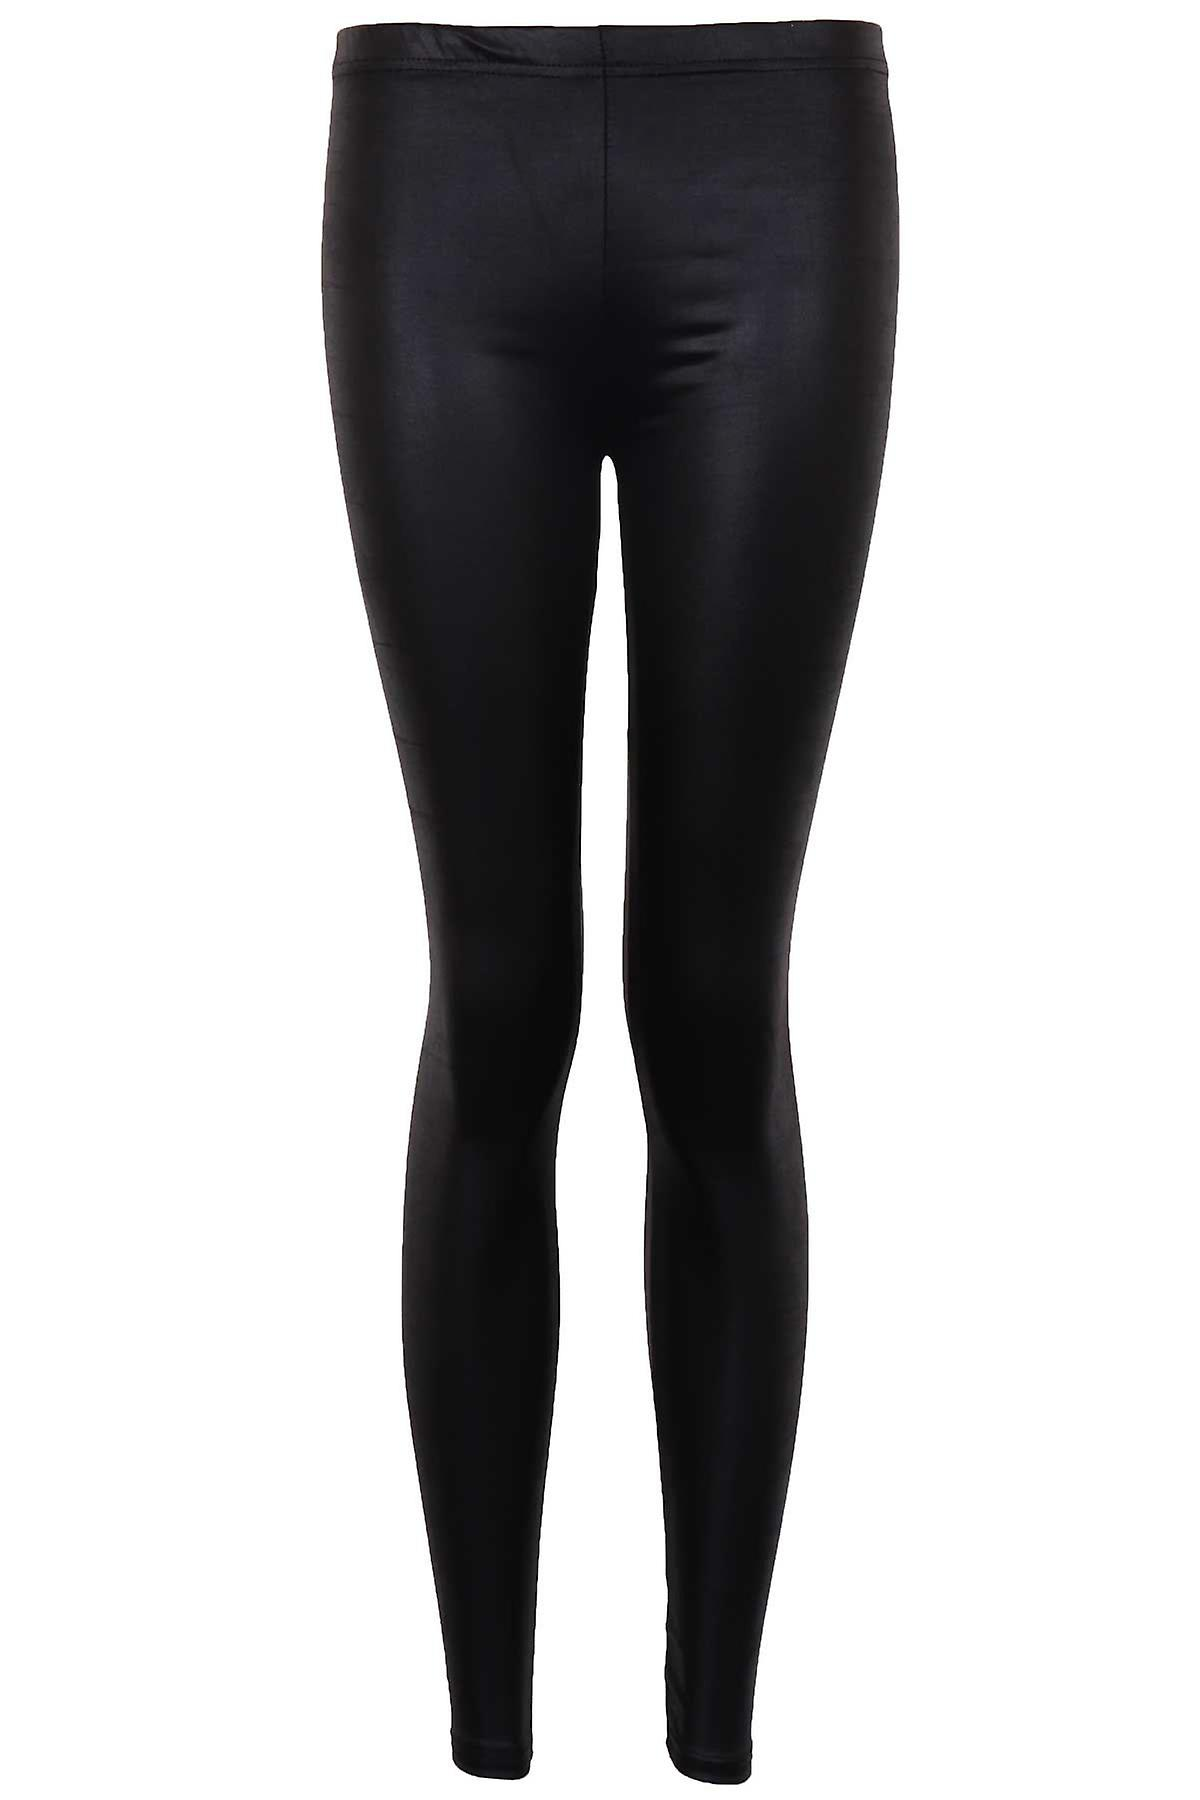 Ladies American Style Disco High Waisted Shiny PVC Women's Leggings Trousers